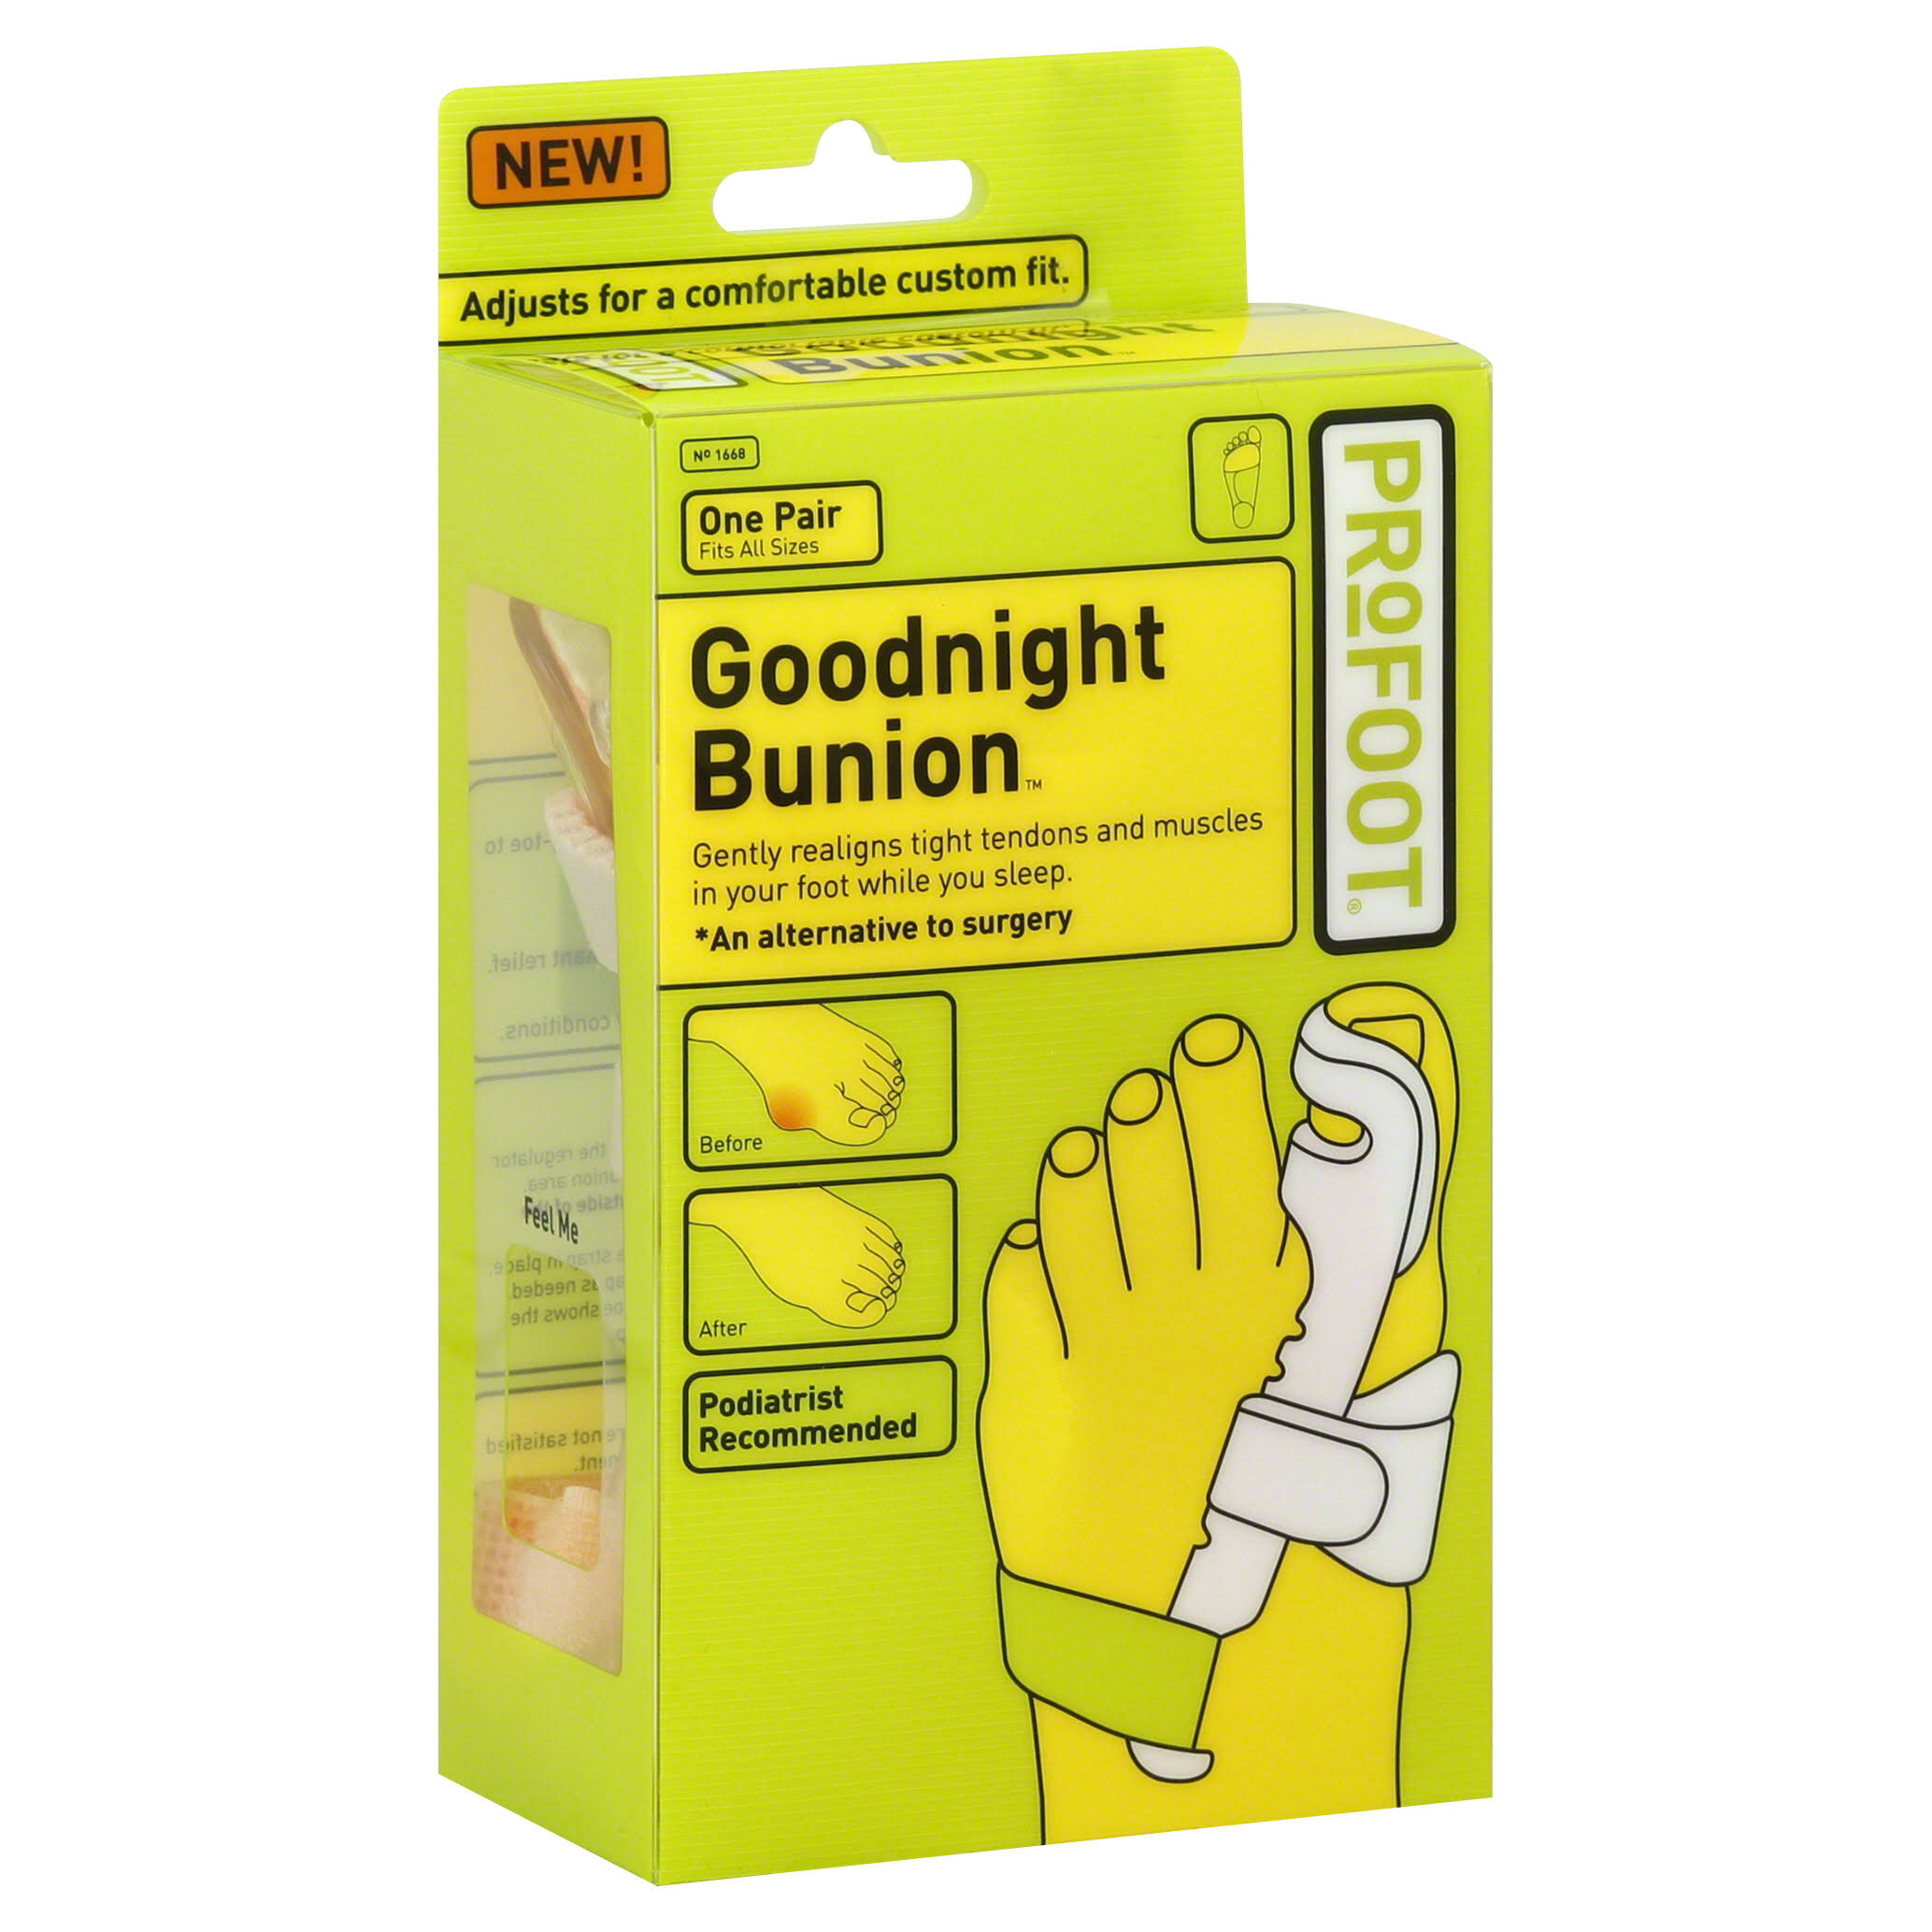 Profoot Care Goodnight Bunion - One Pair